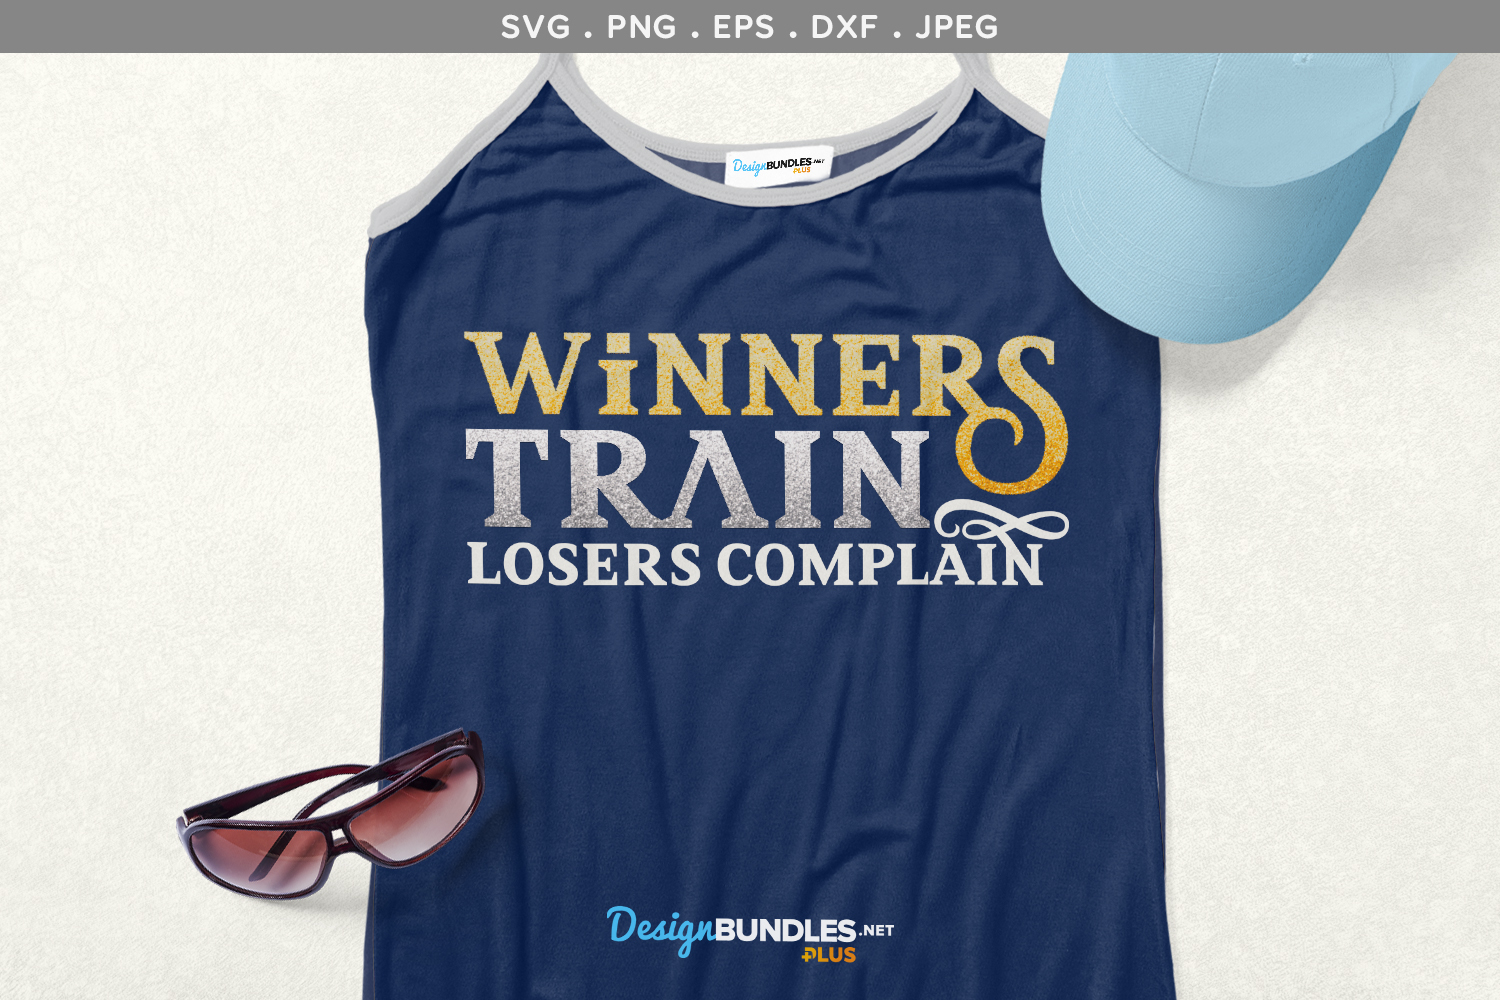 Winners Train, Losers complain- svg, printable example image 1